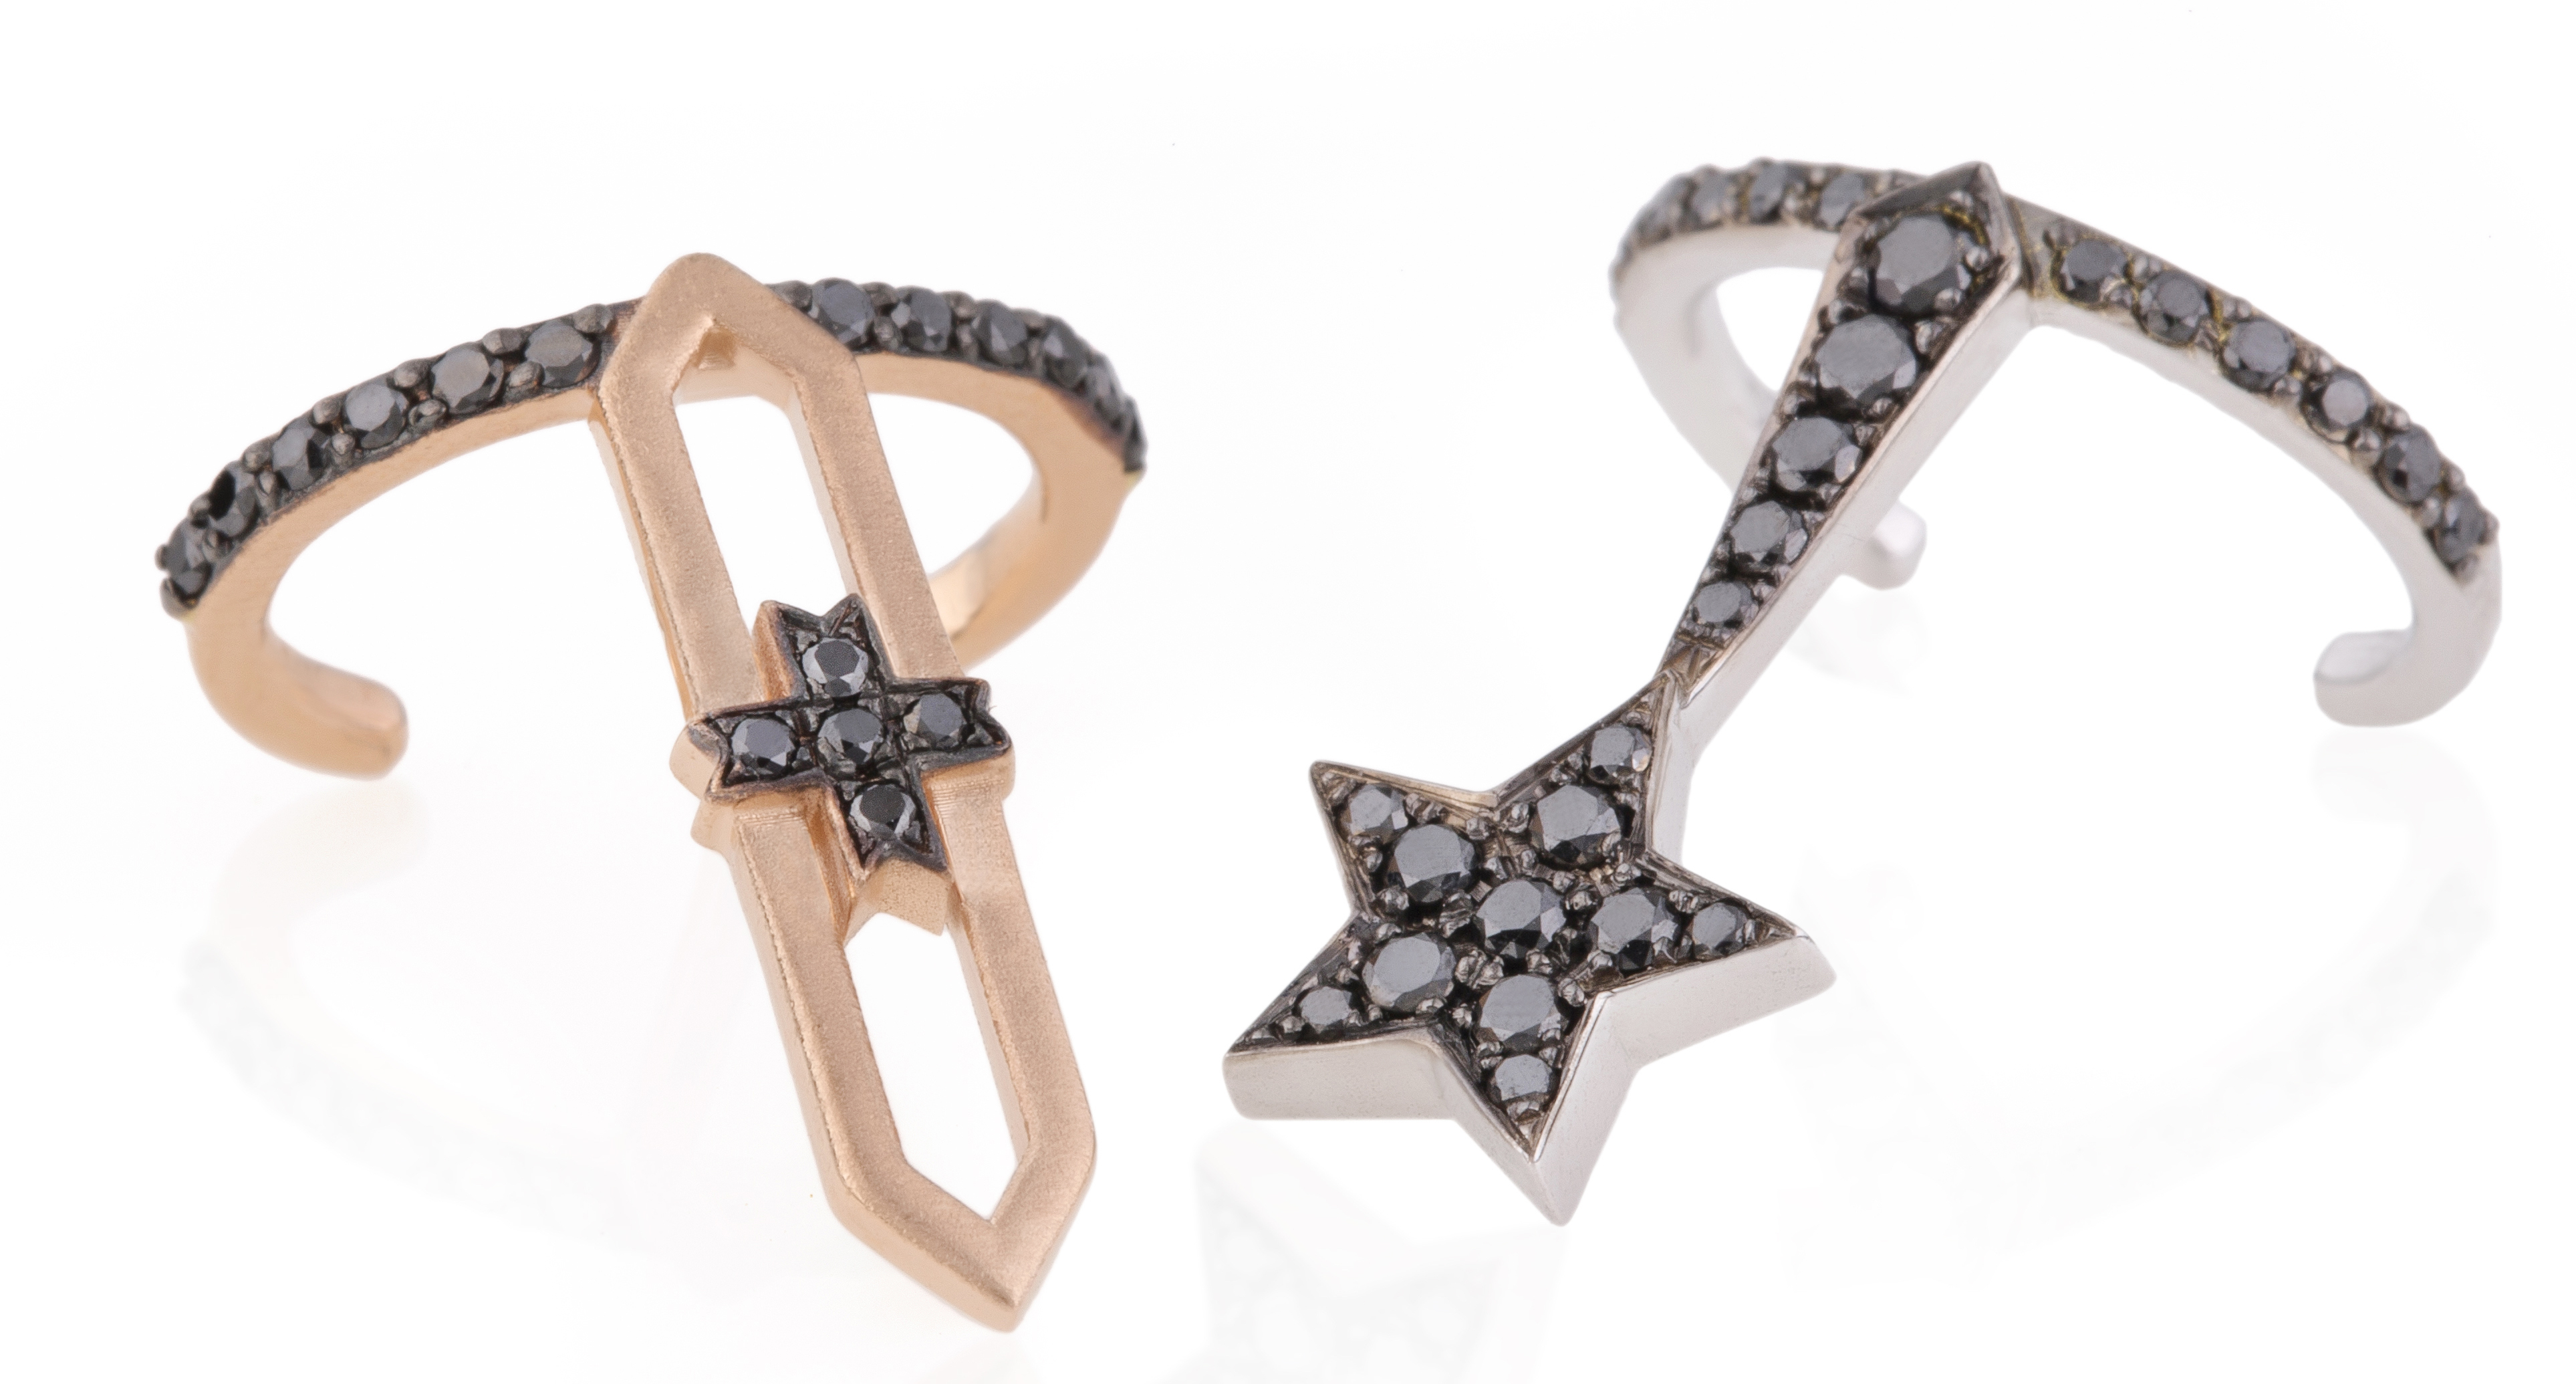 Nada G Identity collection ear cuffs | JCK On Your Market